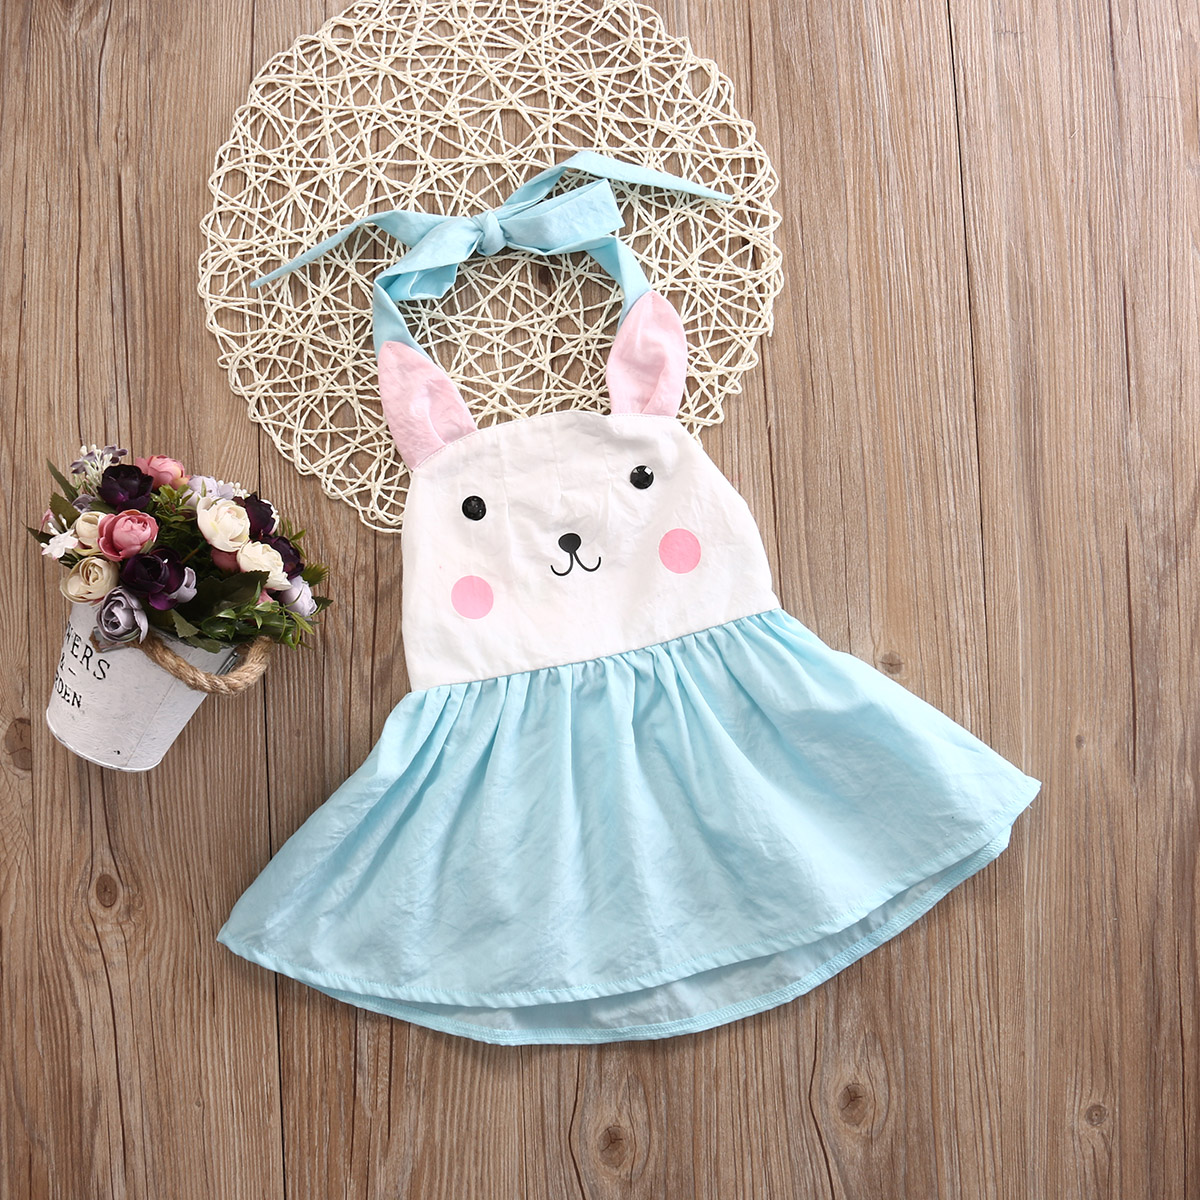 834528a72 Easter 2019 Toddler Baby Kids Girls Bunny Dress Backless Halter Party  Wedding Fancy Dresses 1 5T-in Dresses from Mother & Kids on Aliexpress.com  | Alibaba ...